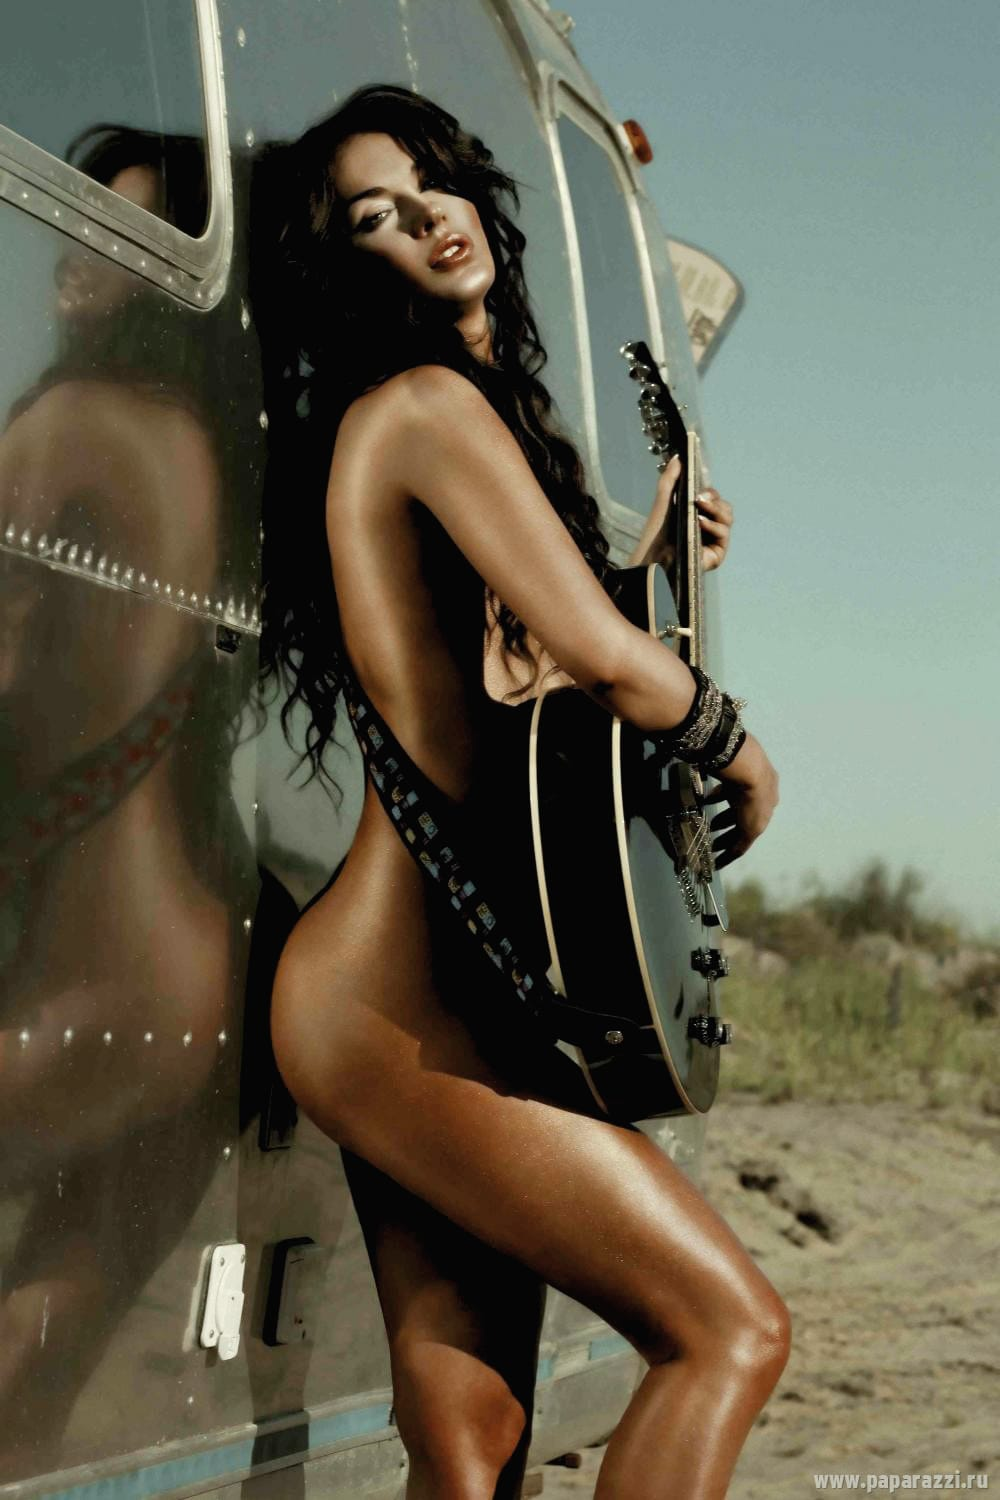 naked babe with bass guitar